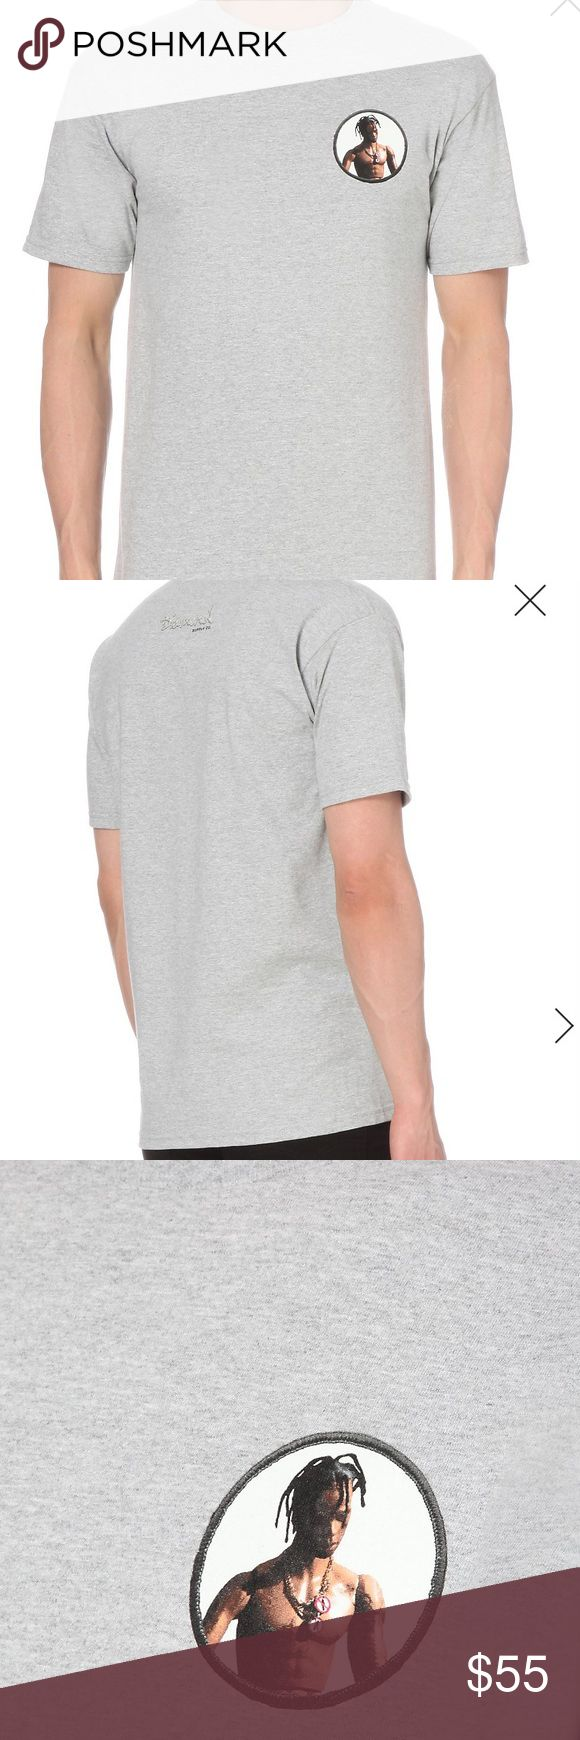 New PacSun Diamond Supply Co. Travis Scott Shirt L Brand new Diamond Supply X Travis Scott T-shirt from PacSun. 100% Authentic with tags still attached. Size Large. Sold out and hard to find. Diamond Supply Co. Shirts Tees - Short Sleeve